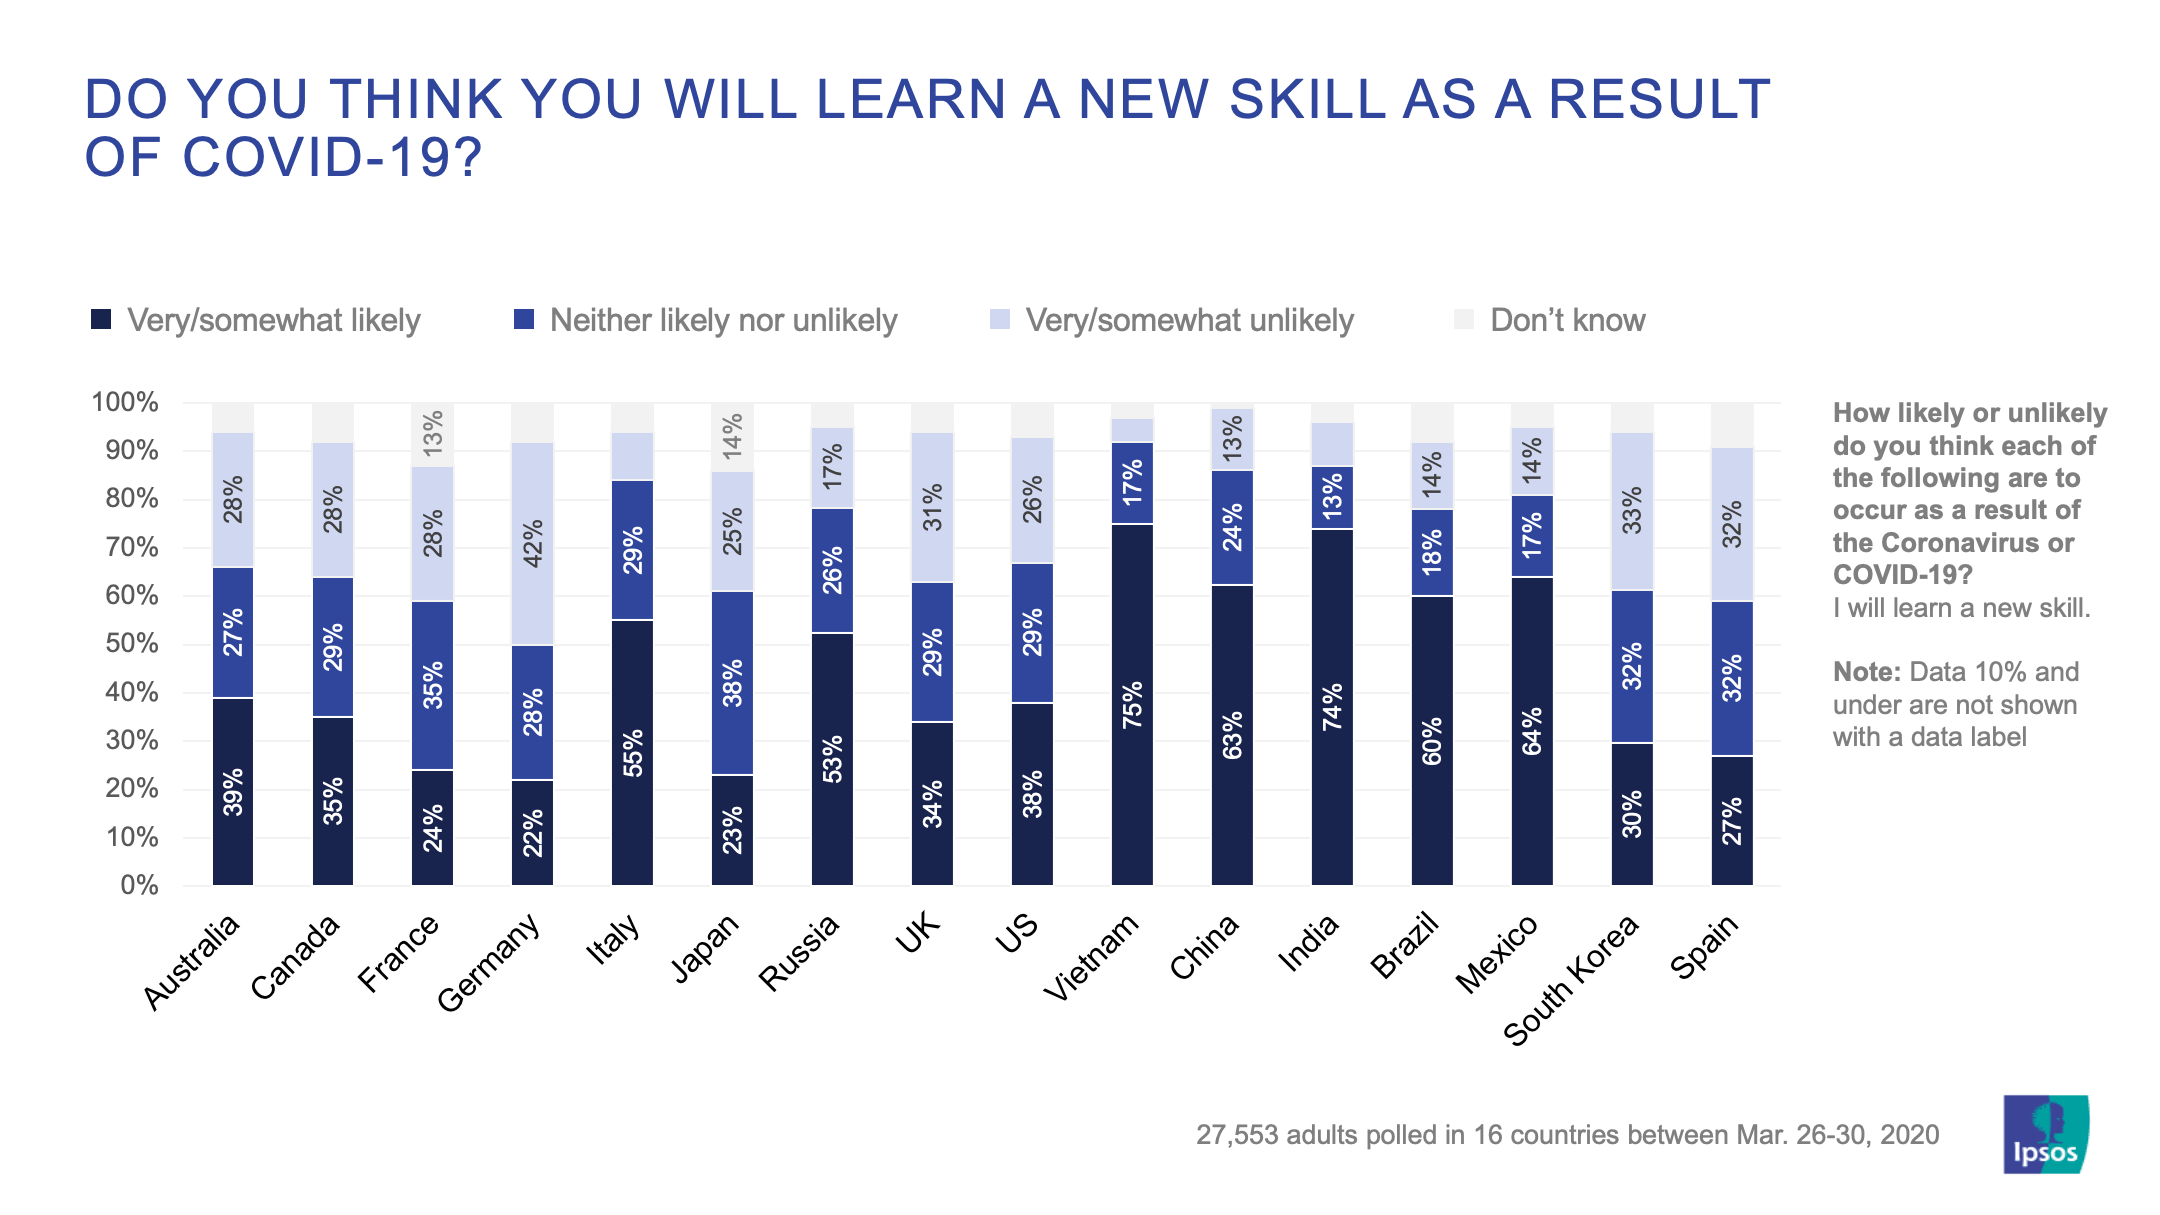 Do you think you will learn a new skill as a result of covid-19 | Ipsos